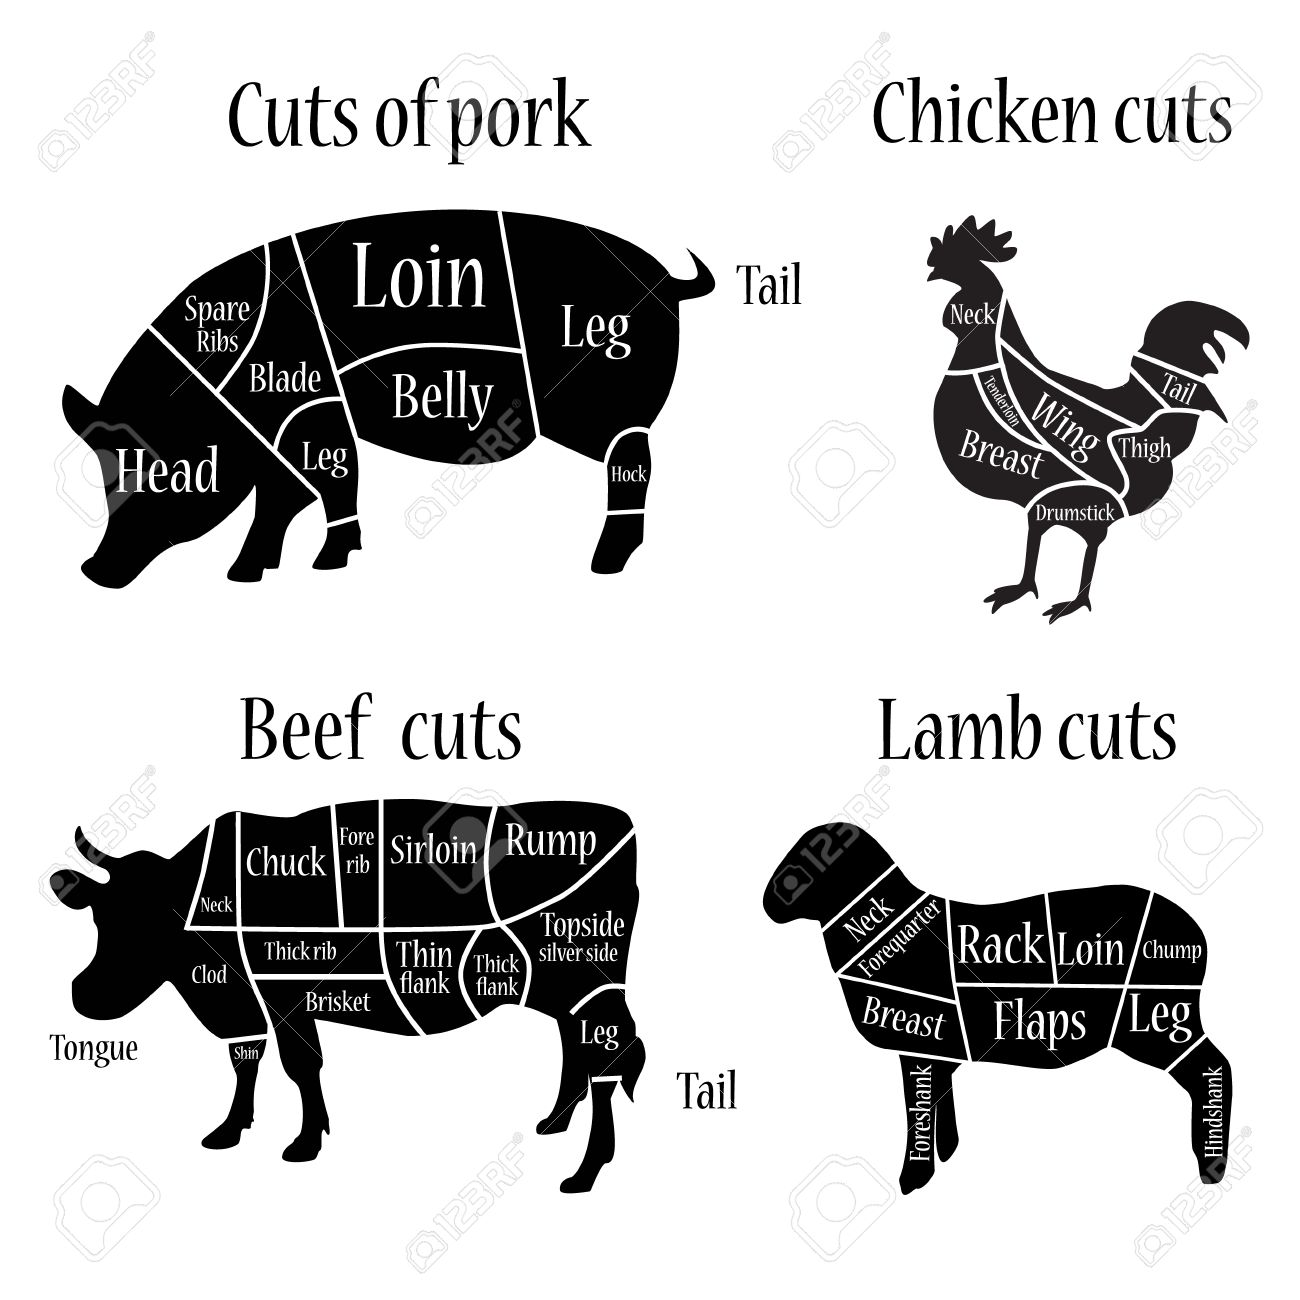 Cow Butcher Diagram Of A S Wiring Libraries Pig Vector Illustration Lamb Chicken And Pork Cuts Diagrammvector